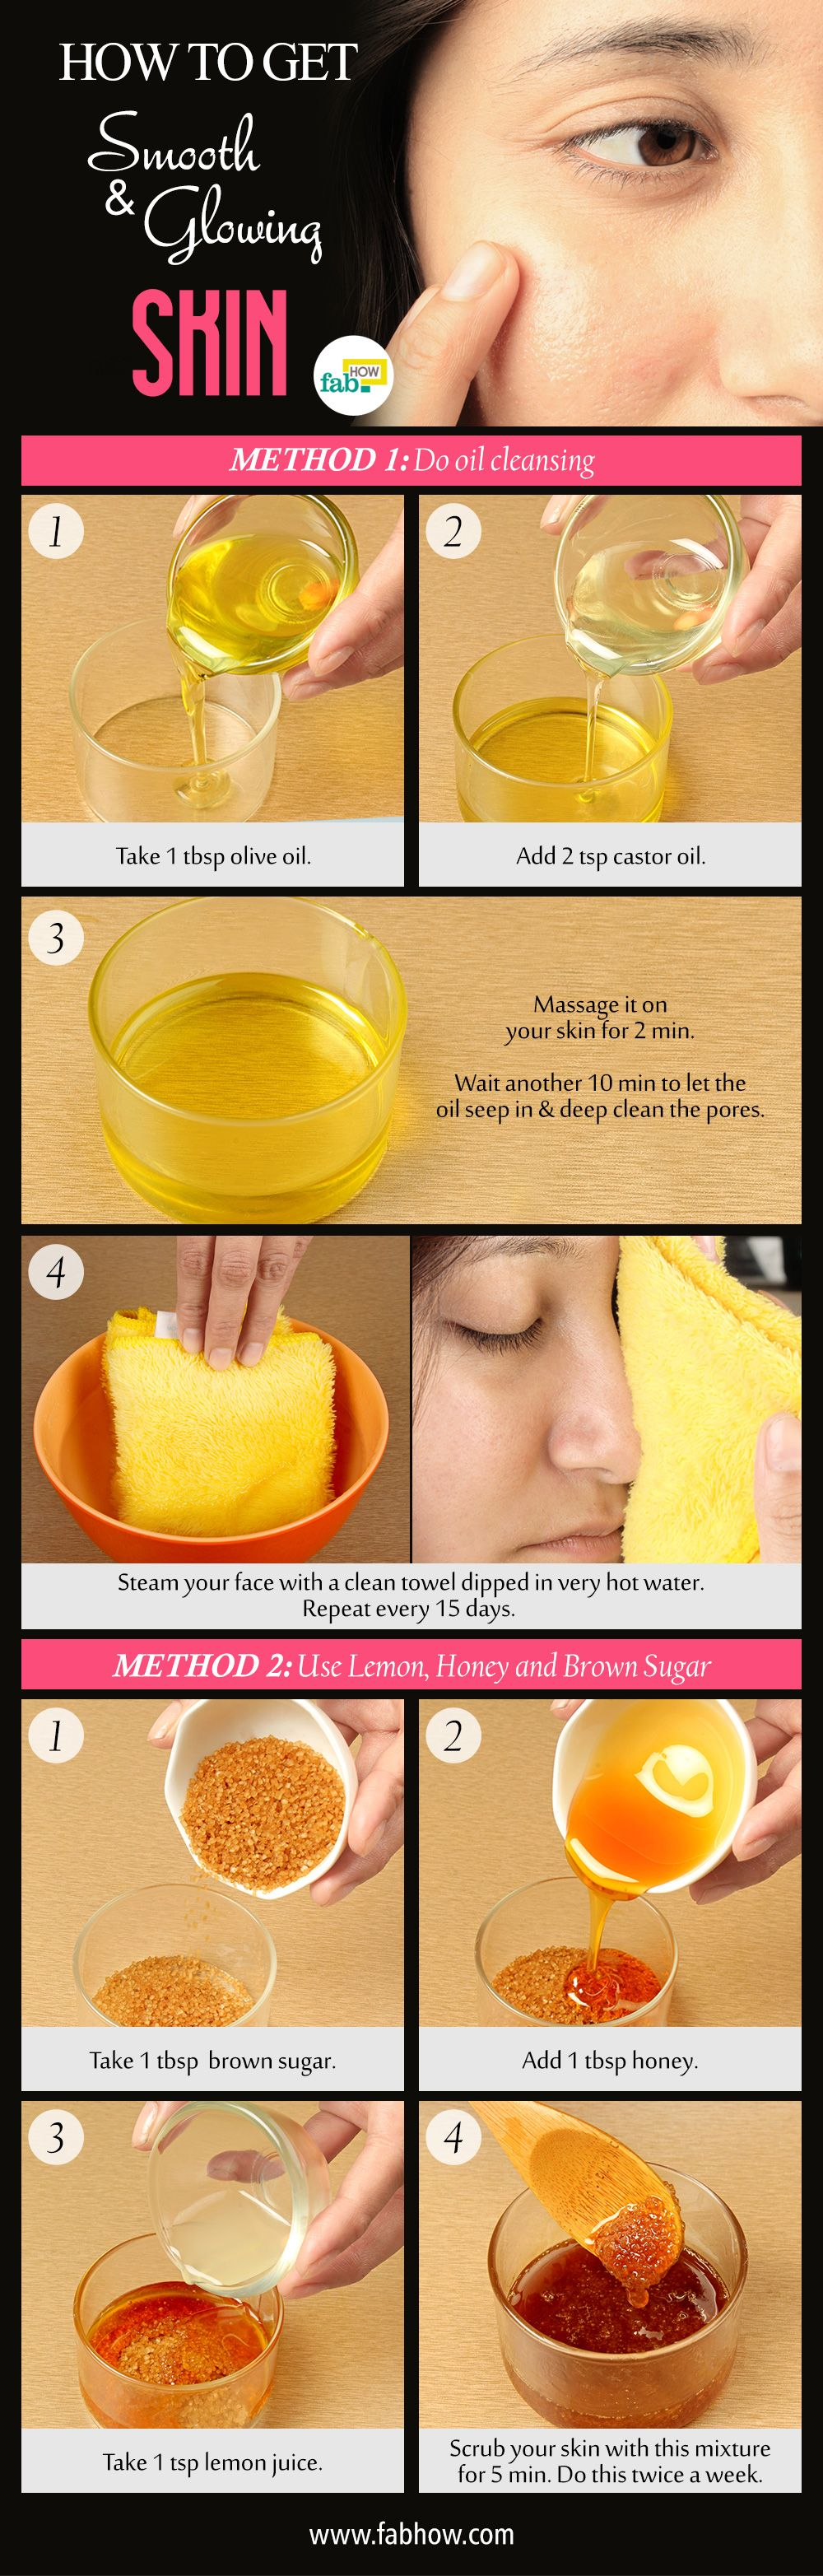 How To Get Smooth And Glowing Skin At Home